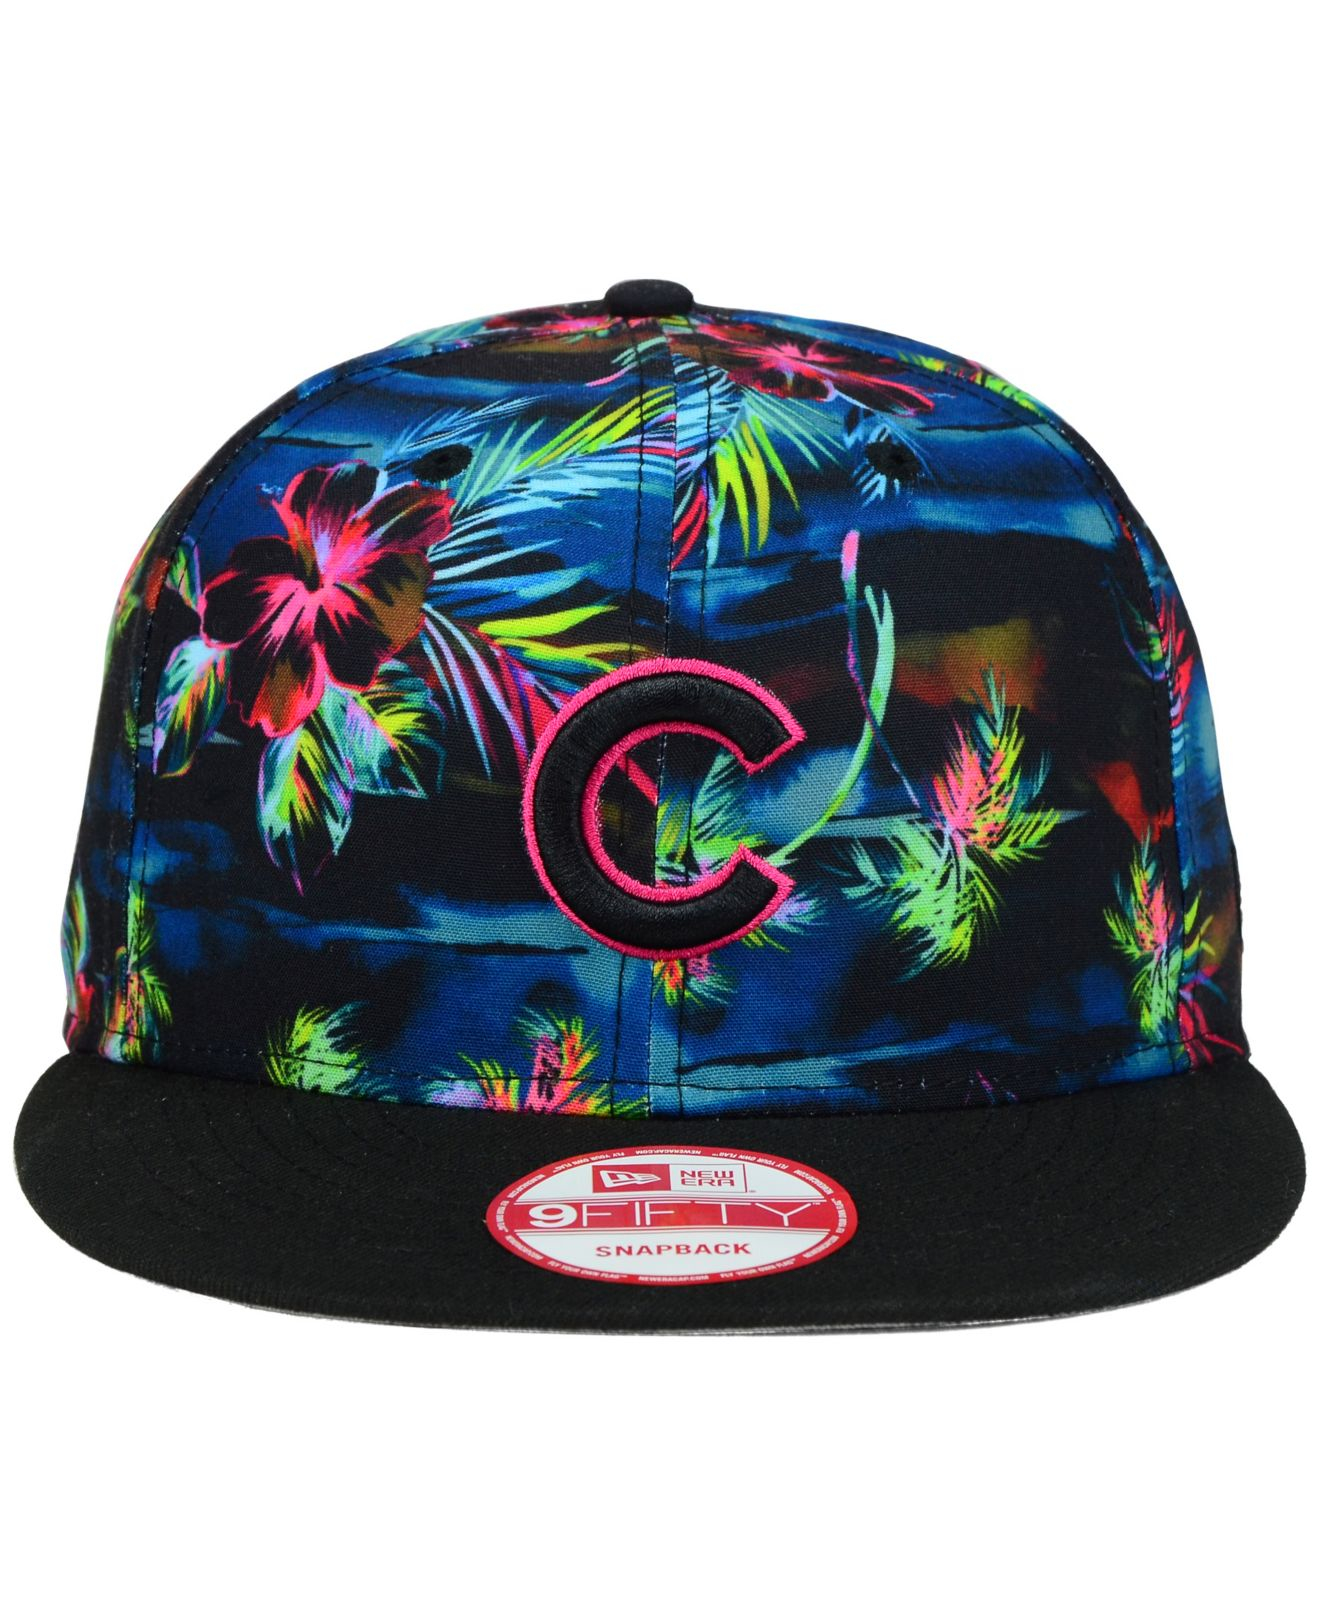 half off 27ee3 46d4c ... canada lyst ktz chicago cubs dark tropic 9fifty snapback cap in blue  for men bd911 6bf0b